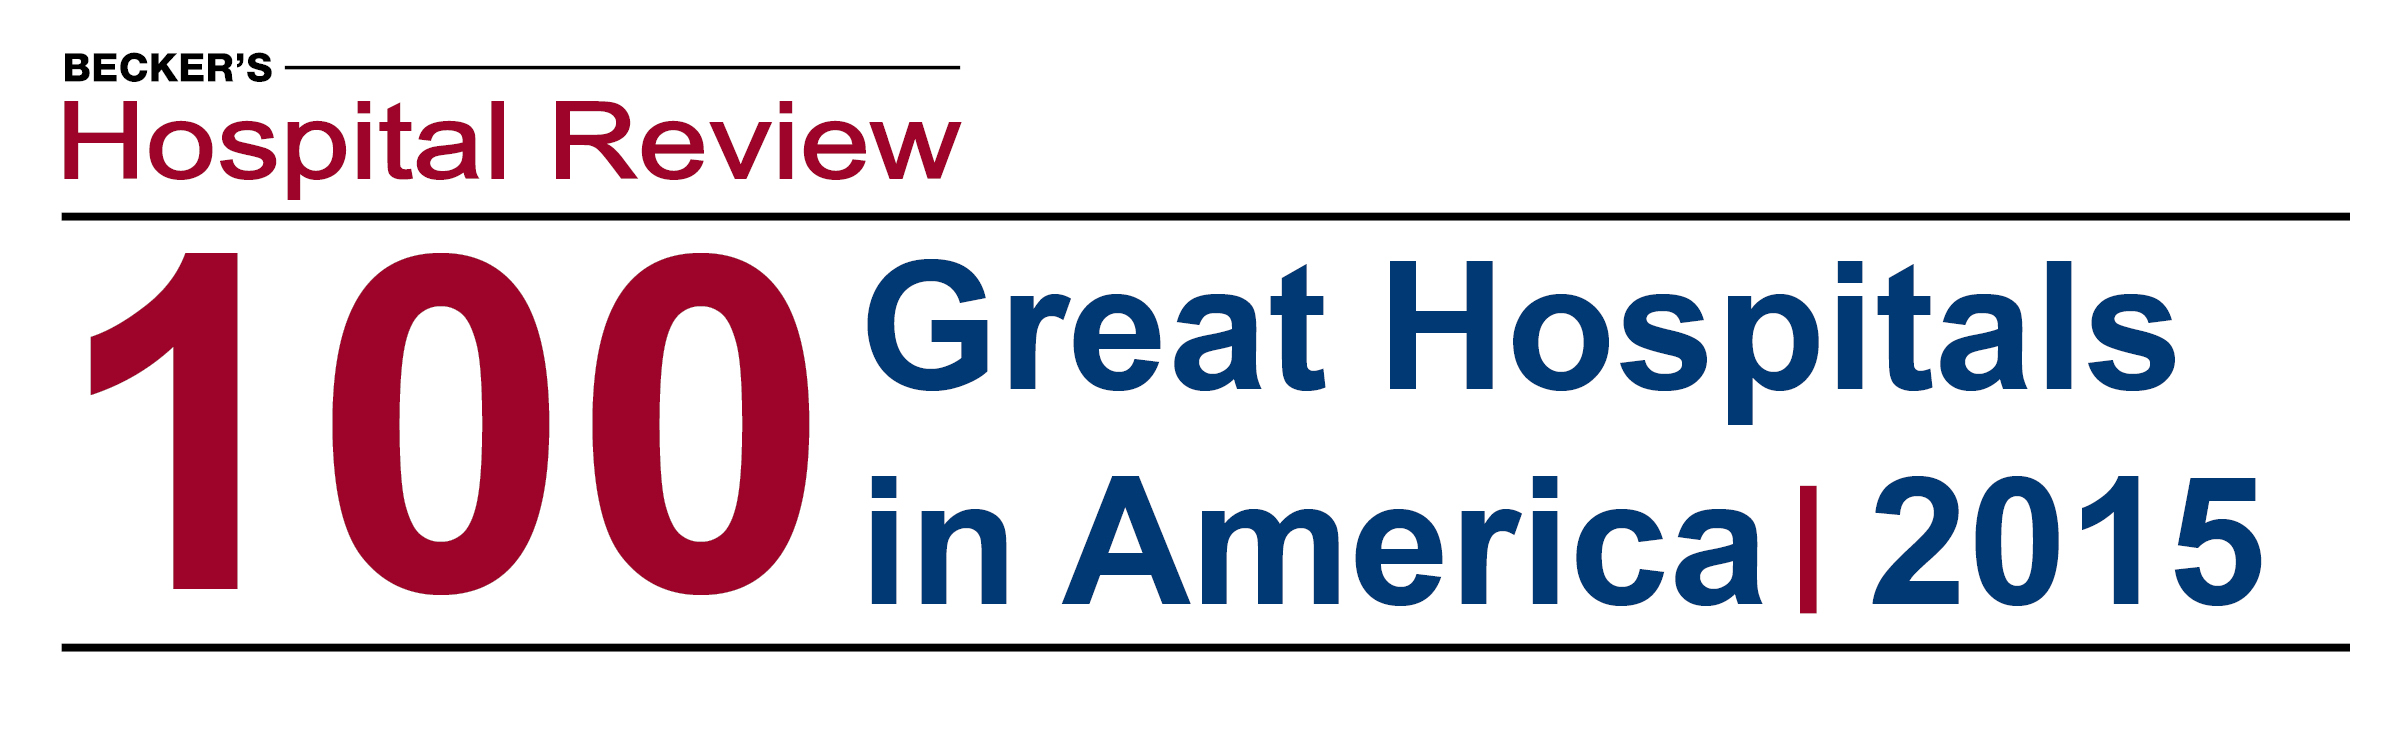 100 great hospitals in america 2015 for Becker study plan